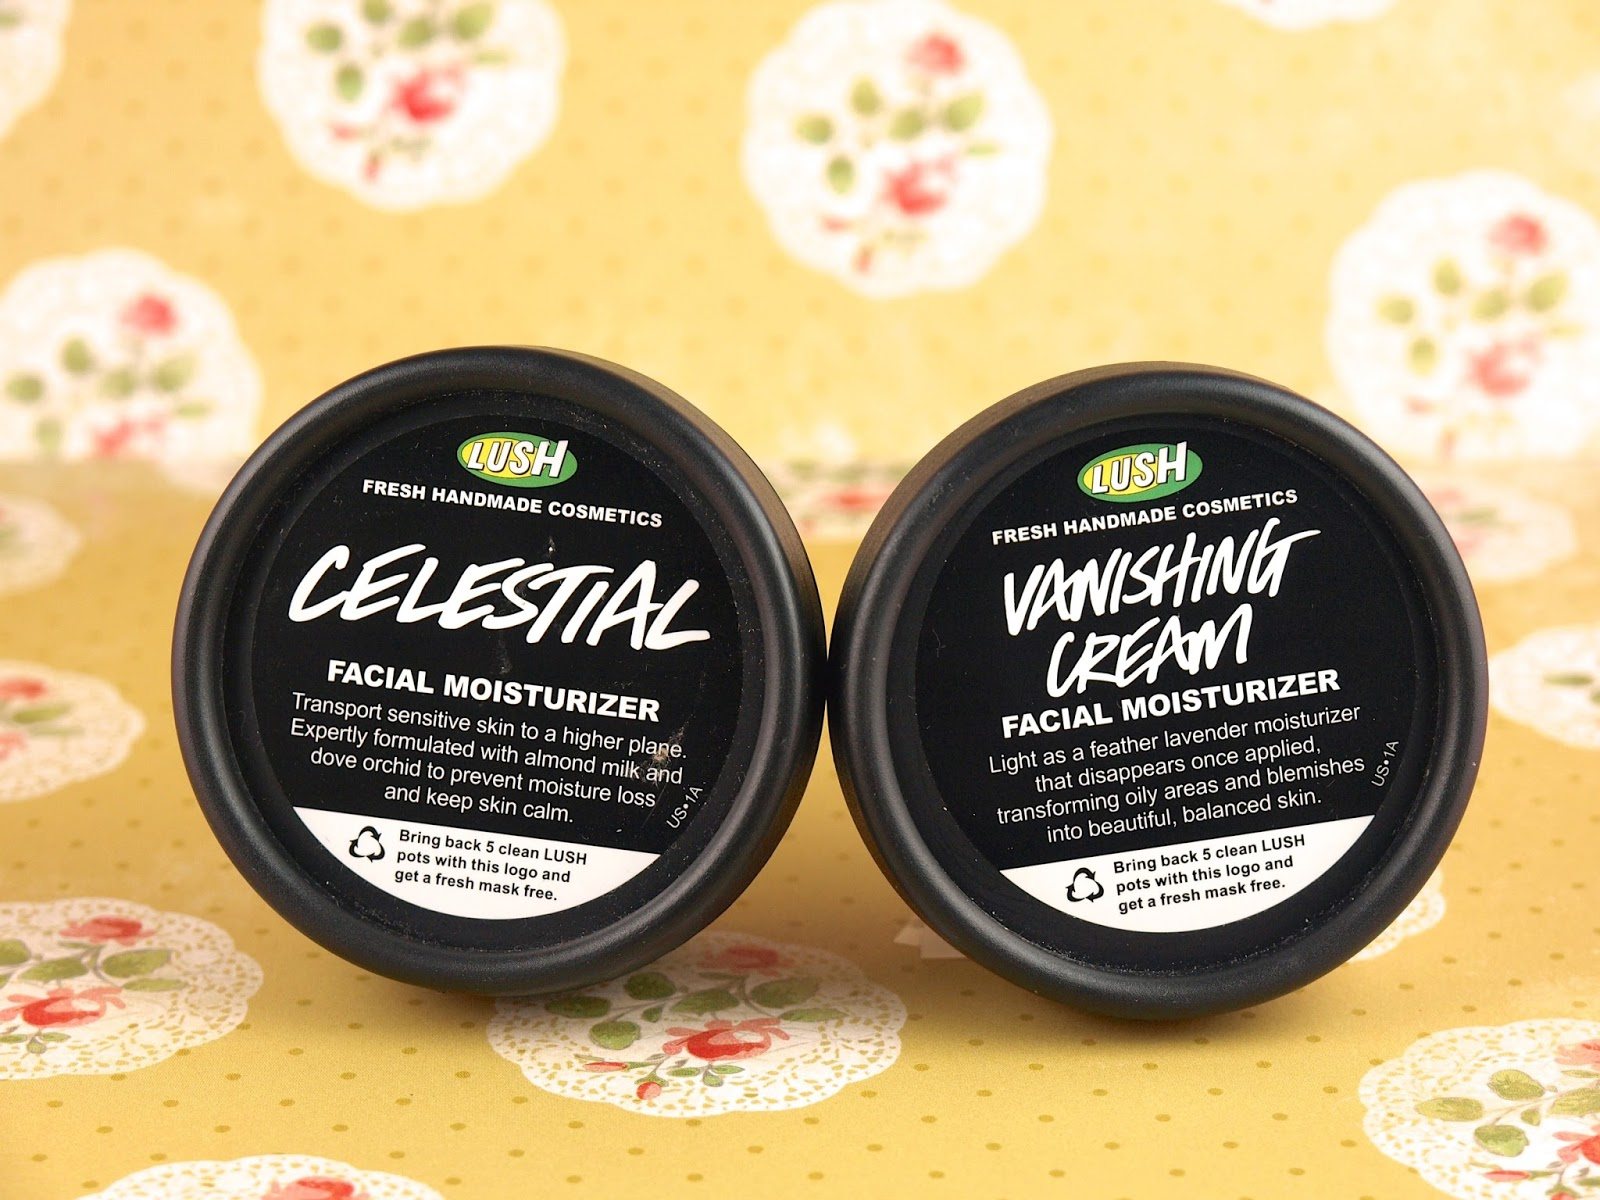 Lush Celestial Facial Moisturizer and Vanishing Cream Facial Moisturizer: Review